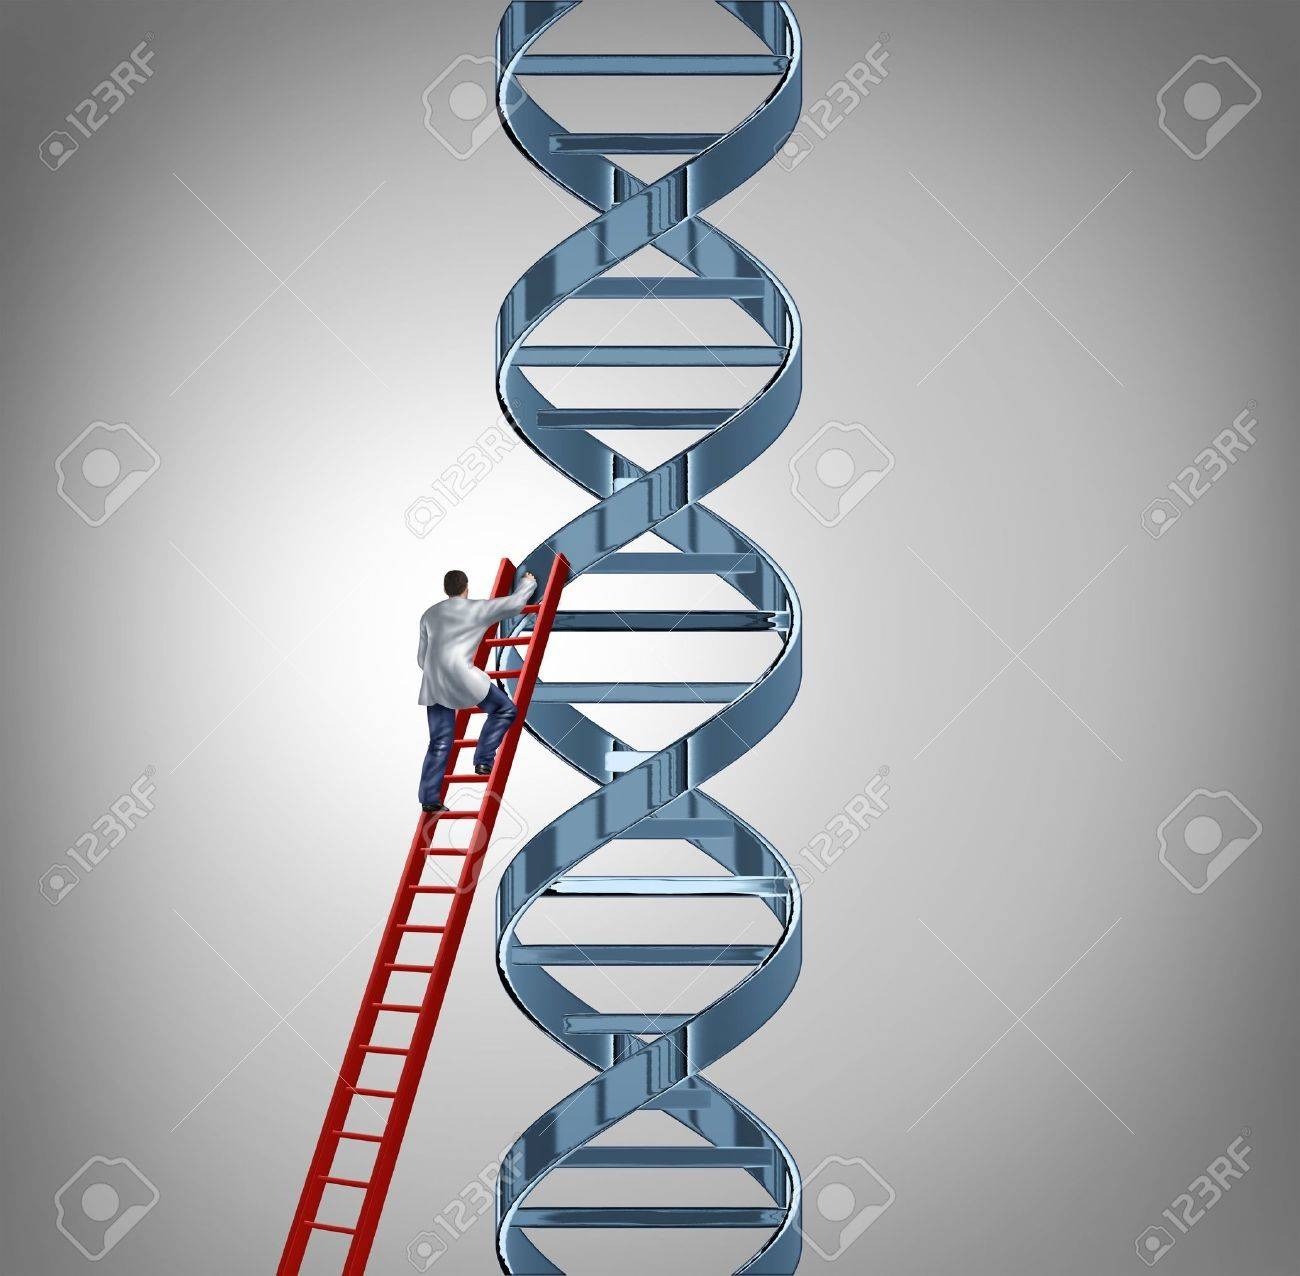 Genetic research and testing with a doctor or scientist climbing a red ladder to study a DNA strand of genetic code to help discover a cure for human disease and illness as a symbol of health care medicine and medical technology Stock Photo - 21743096